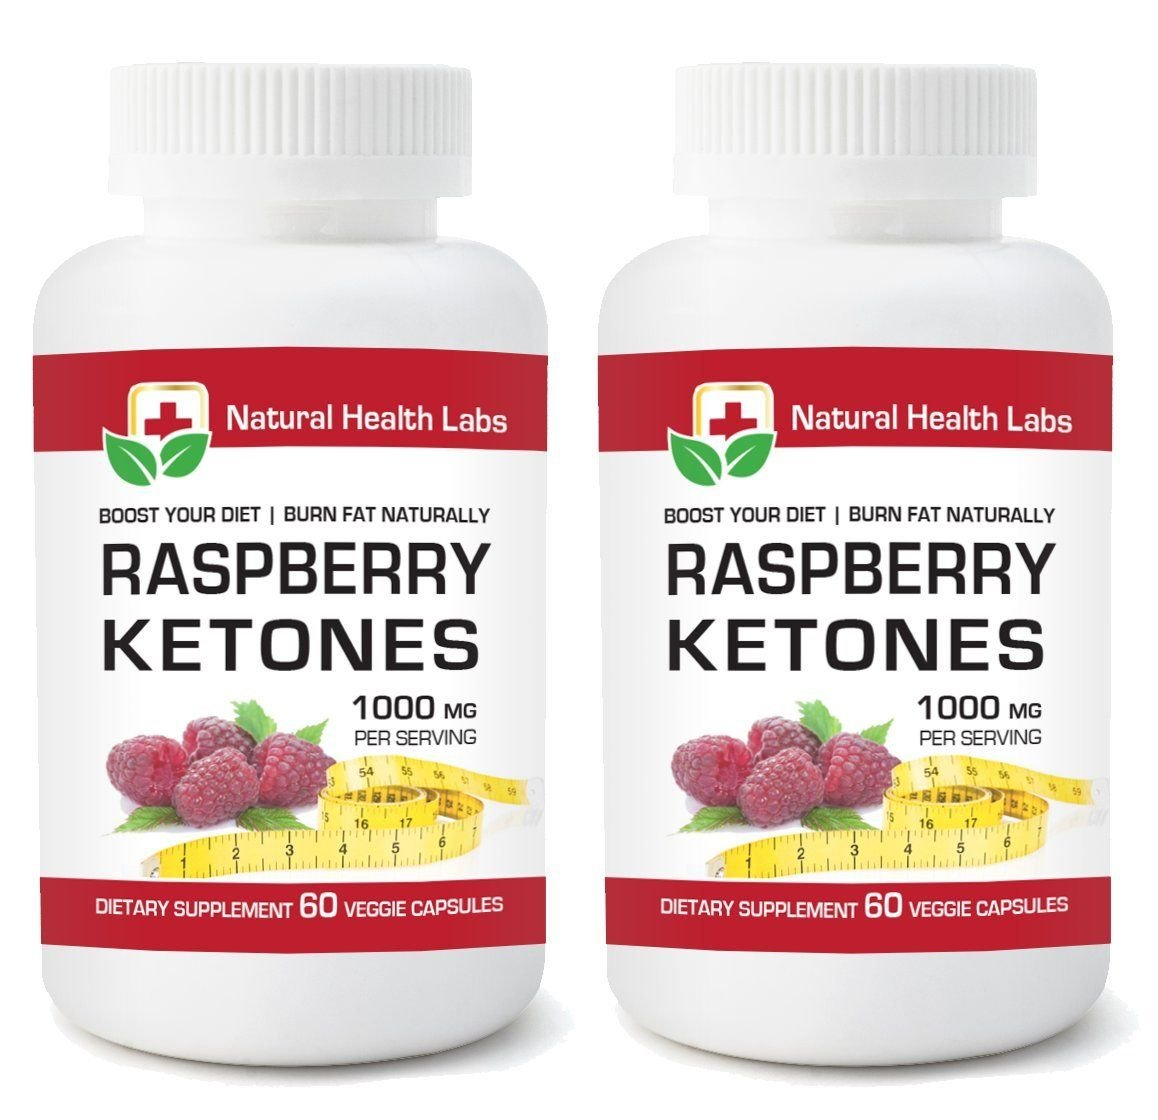 BUY ONE - GET ONE FREE | RASPBERRY KETONES 1000 MG | BURNS BELLY FAT | BOOSTS METABOLISM WHILE YOU SLEEP | NATURAL HEALTH LABS - SERVING HEALTH PROFESSIONALS SINCE 2004